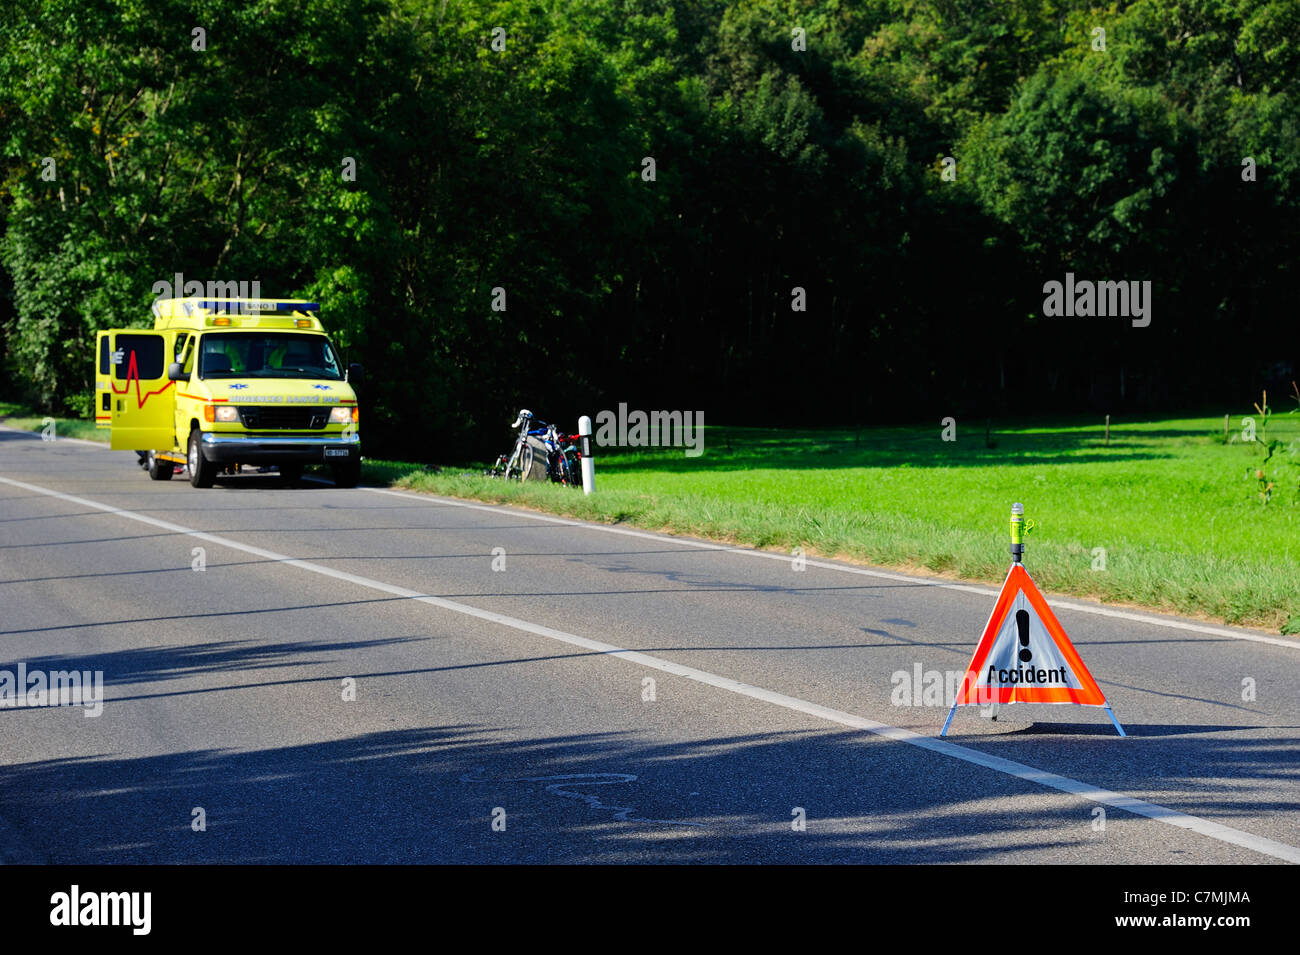 Swiss ambulance at the site of an accident. Focus on the accident sign. The accident involved a cyclist hit by a - Stock Image